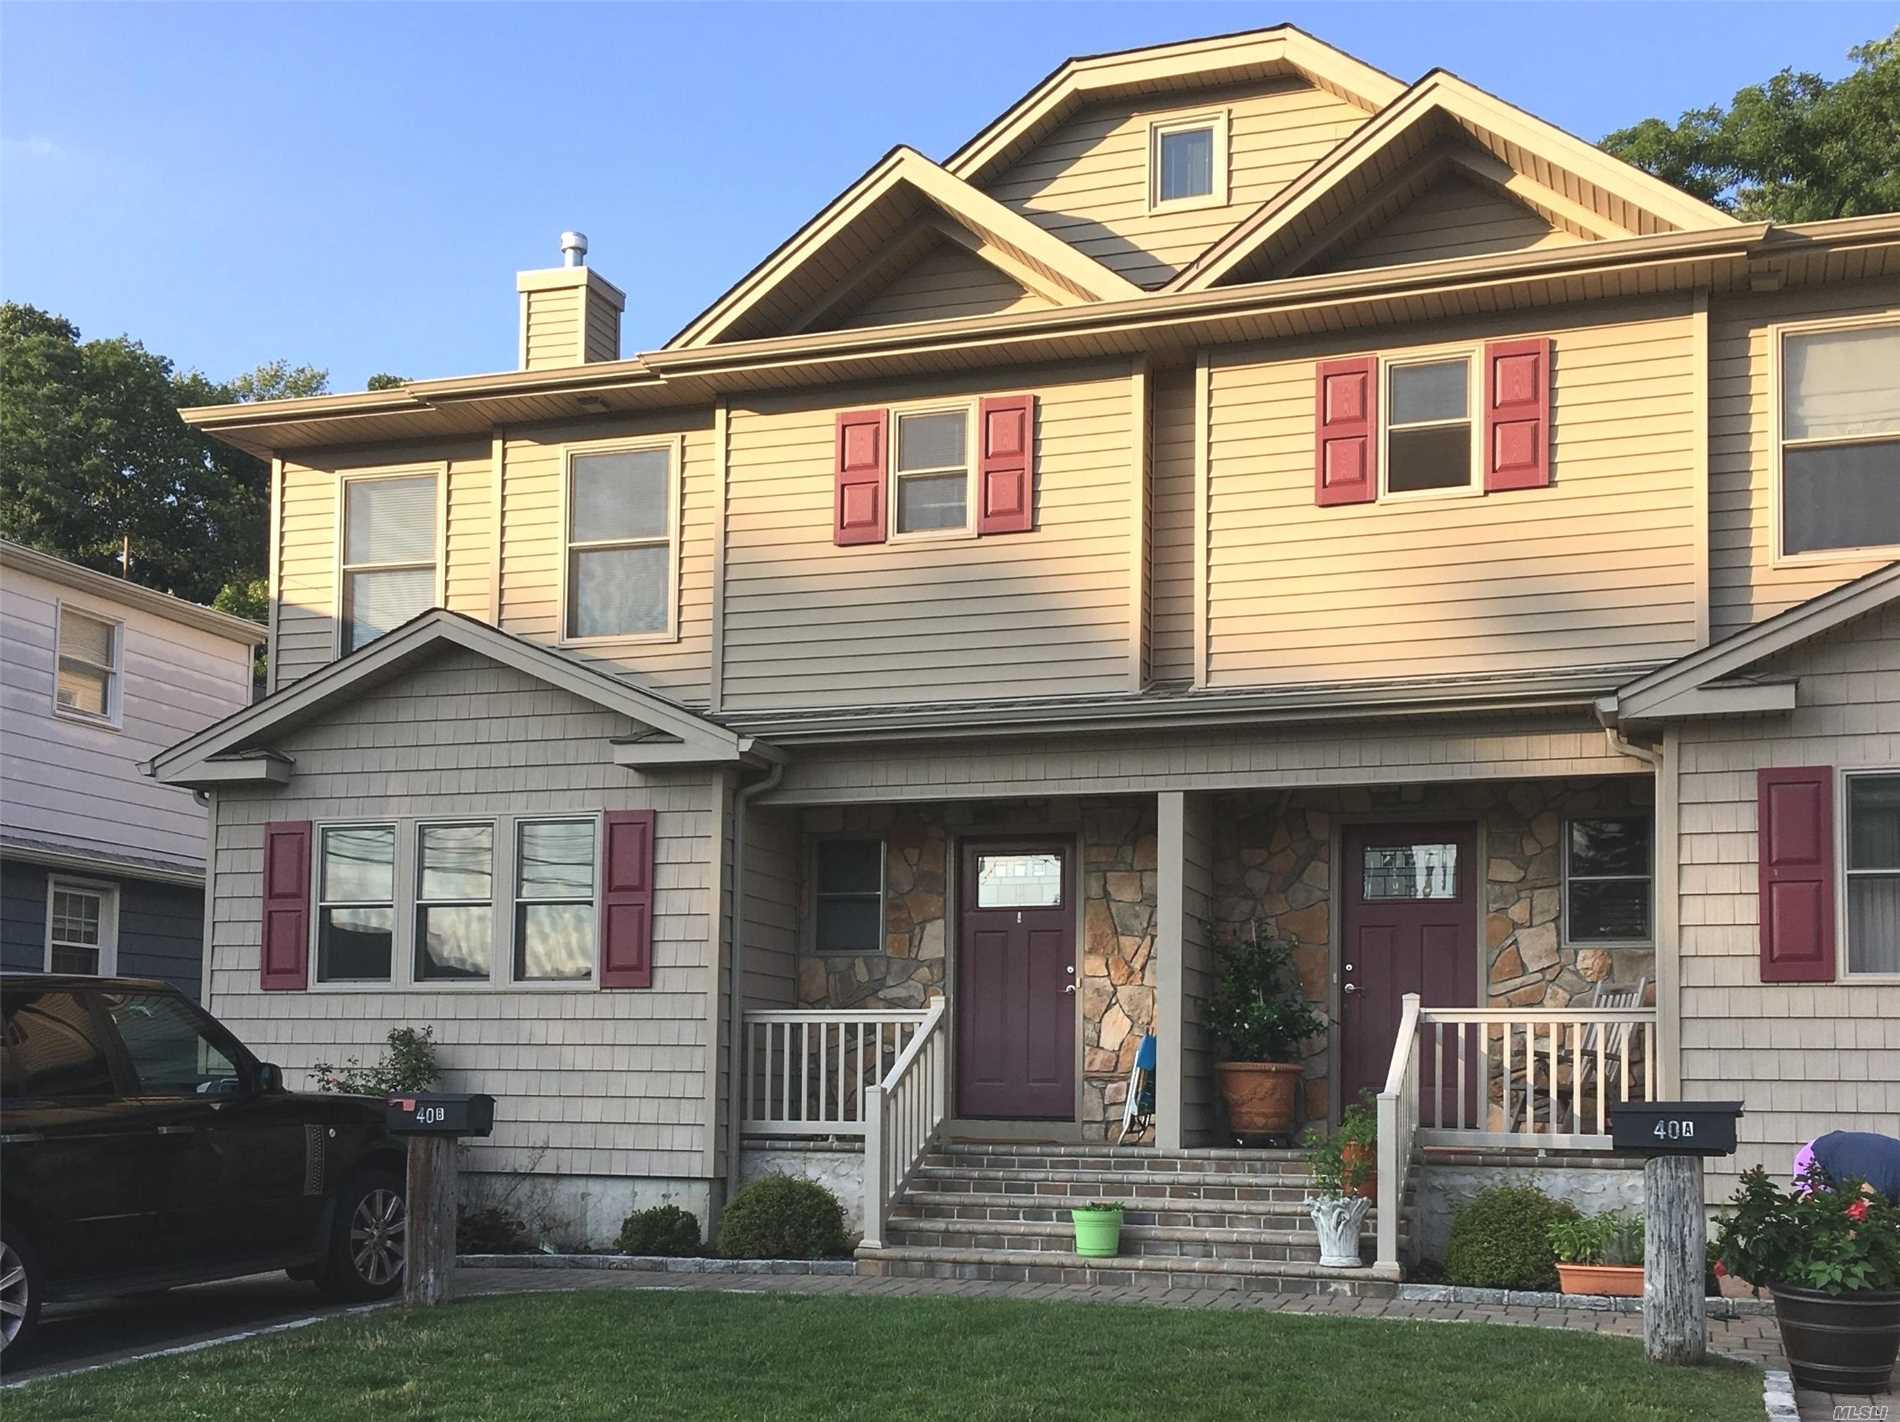 Fabulous Two Family Home On Quiet Road. Large Family Room And Living Room With Doors To Deck And Yard. Three Bedrooms, Plenty Of Closet Space, Full Finished Basement. Close To Manorhaven Community Park, Beach And Pool.